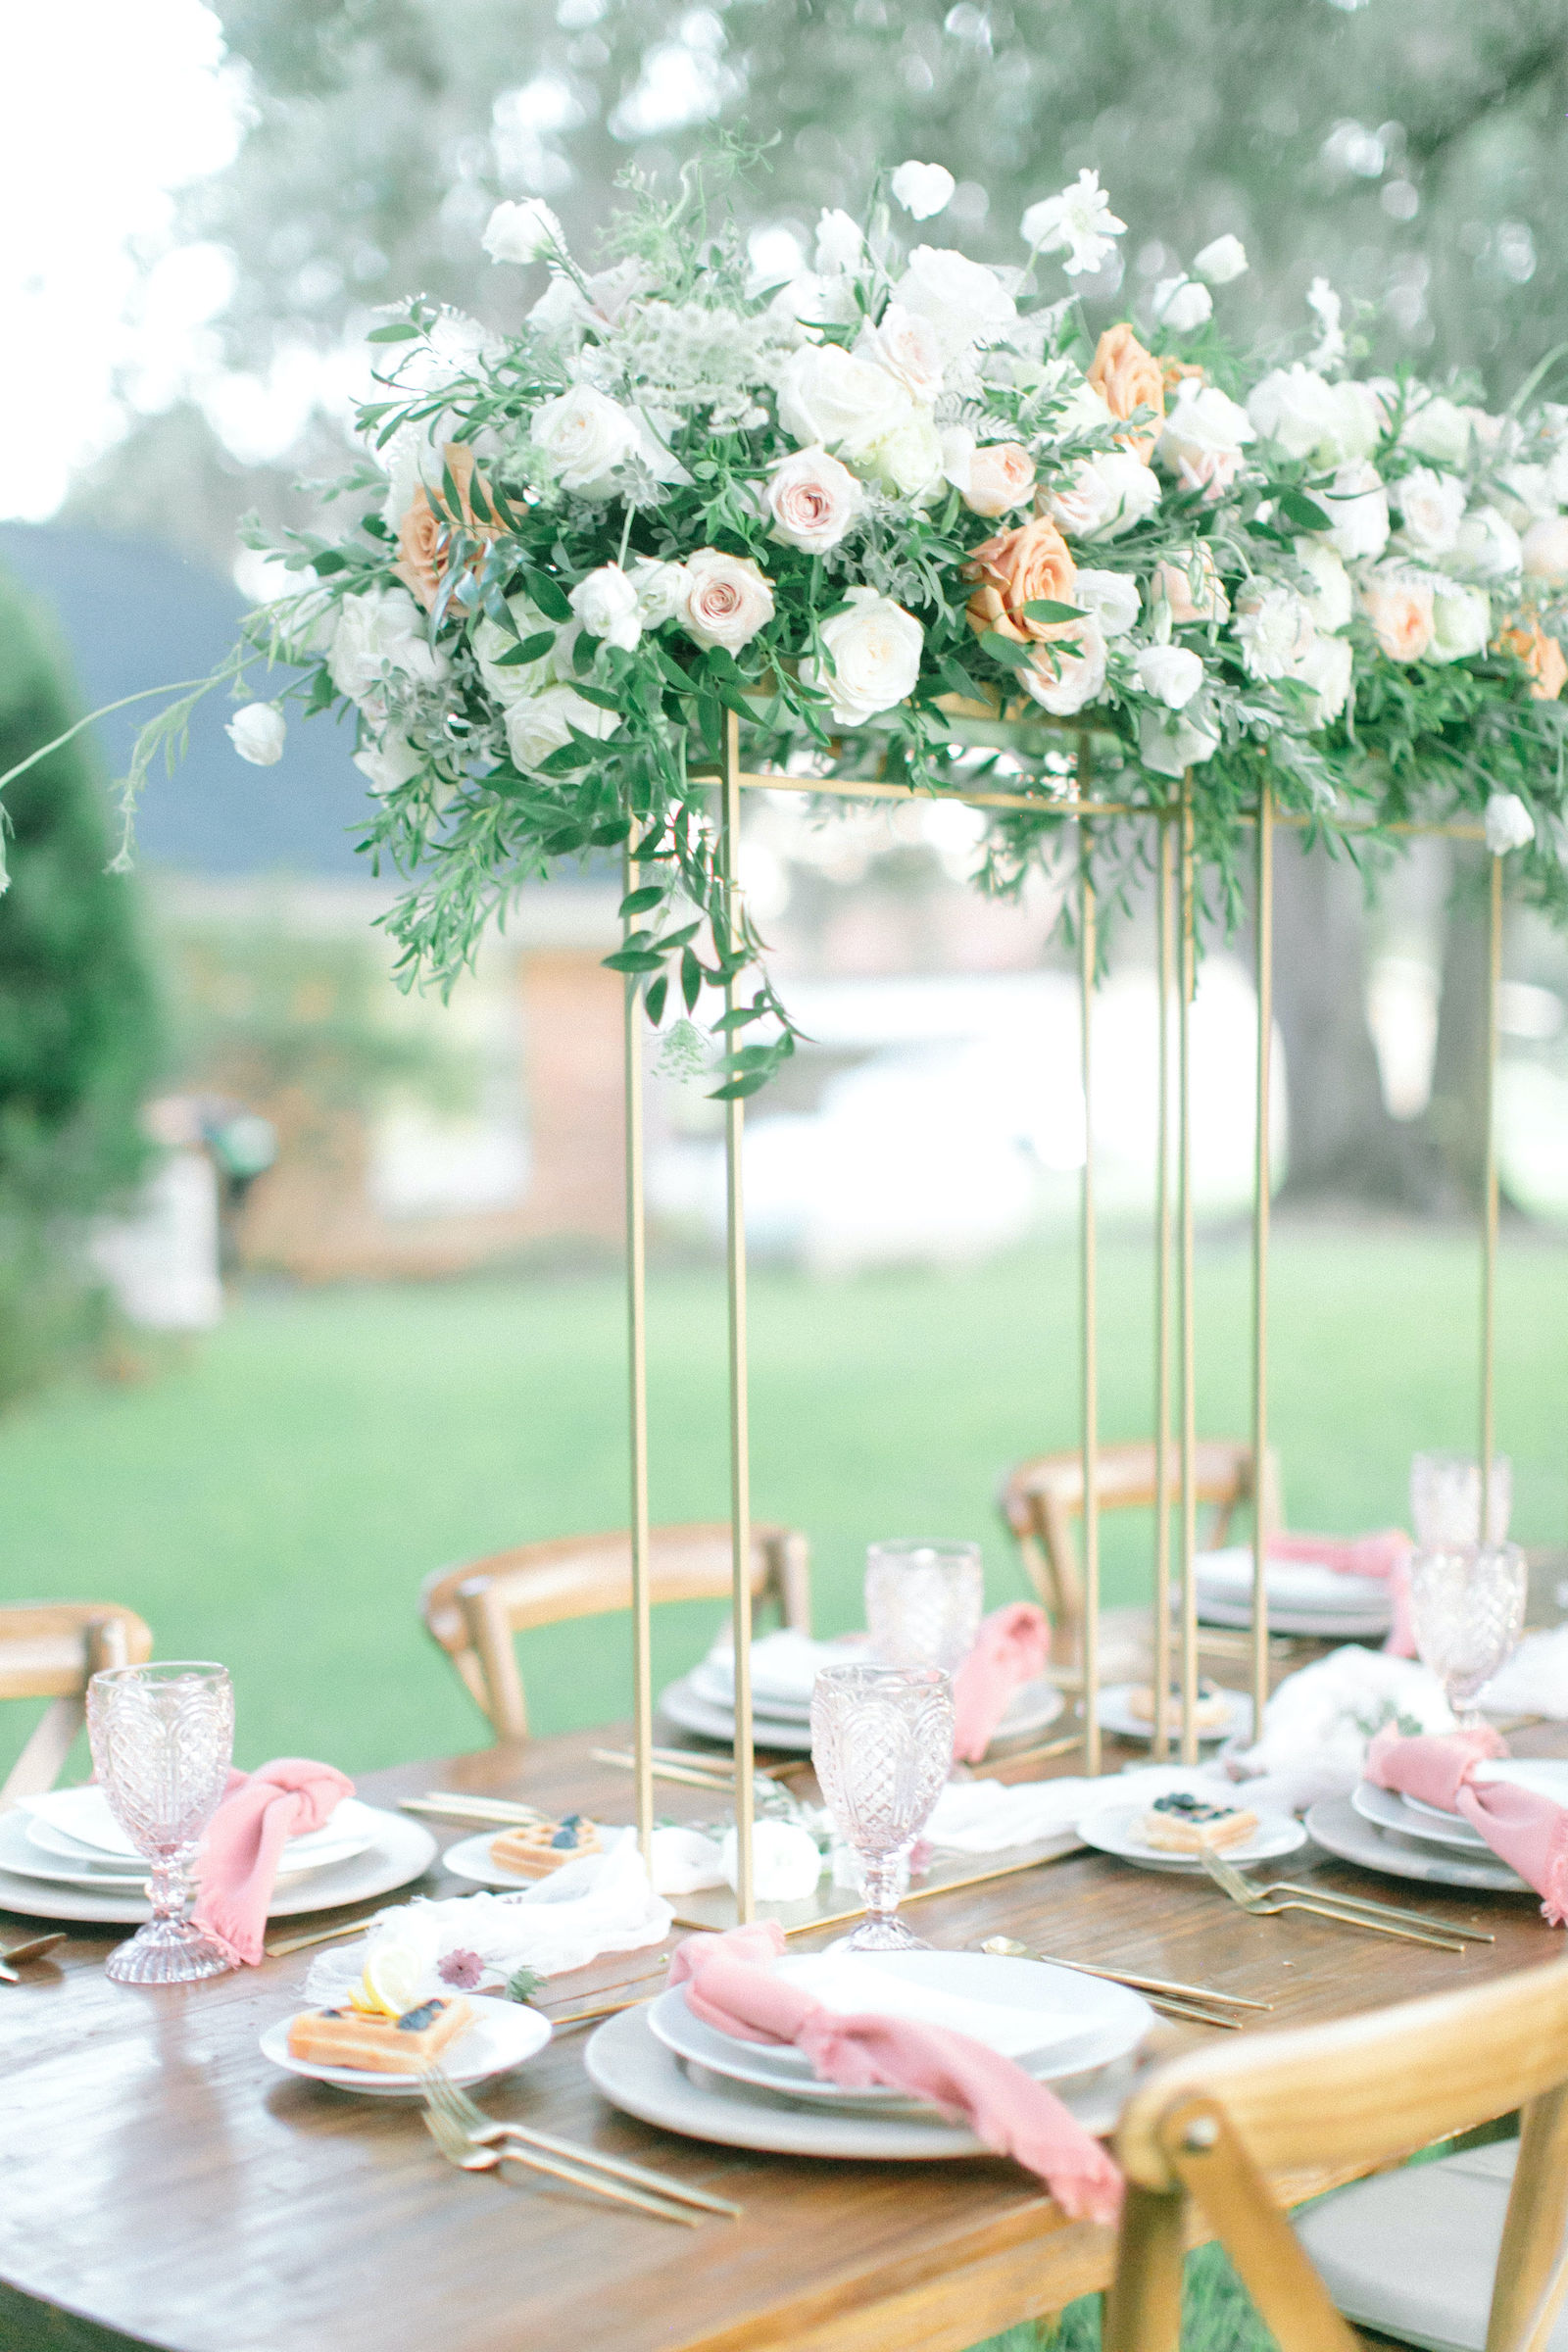 Outdoor Styled Shoot Brunch Breakfast Wedding Reception Table Place Setting with Gold Flatware and Whitewash Wood Charger Plate | Natural White Champagne and Peach Tall Centerpiece with Roses Queen Anne Lace and Greenery on Gold Geometric Stand | Blush Pink Napkins and Vintage Glassware Goblets at Place Settings